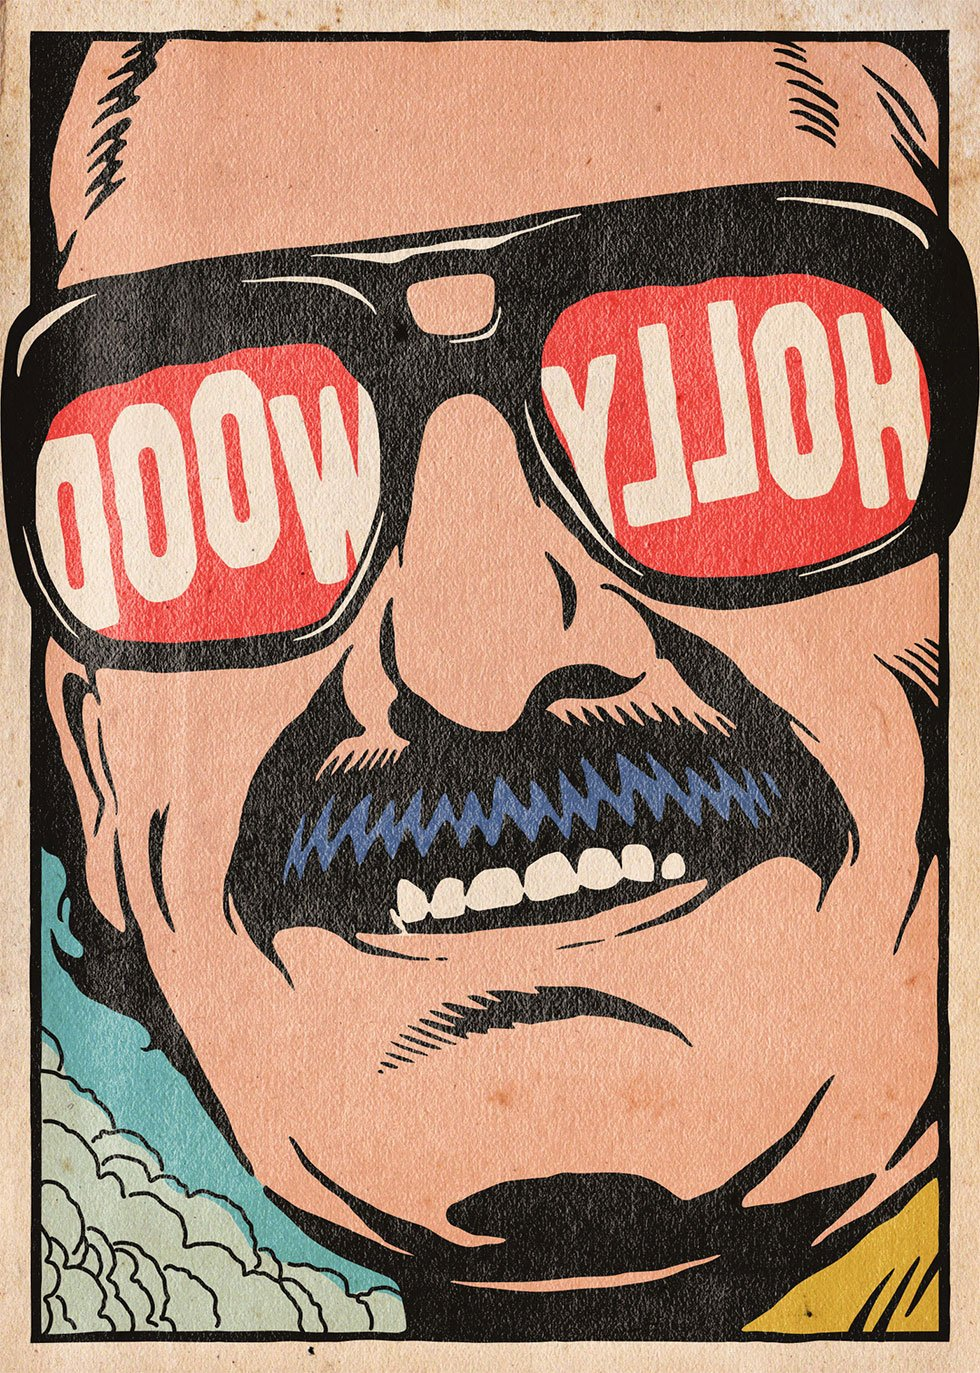 Stan Lee: A Hero For All by Butcher Billy for The Los Angeles Times